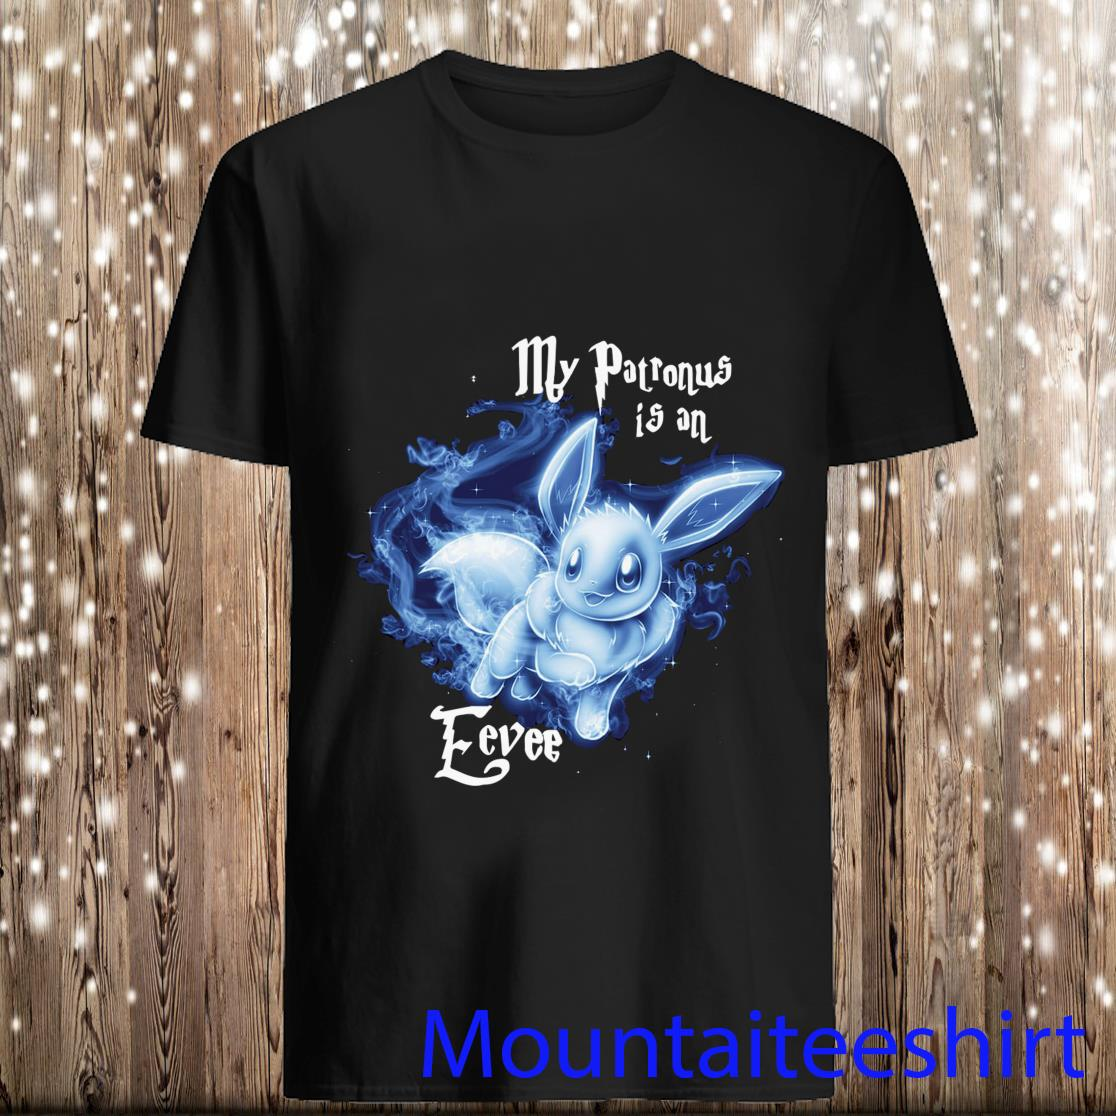 My Patronus Is An Eevee Shirt